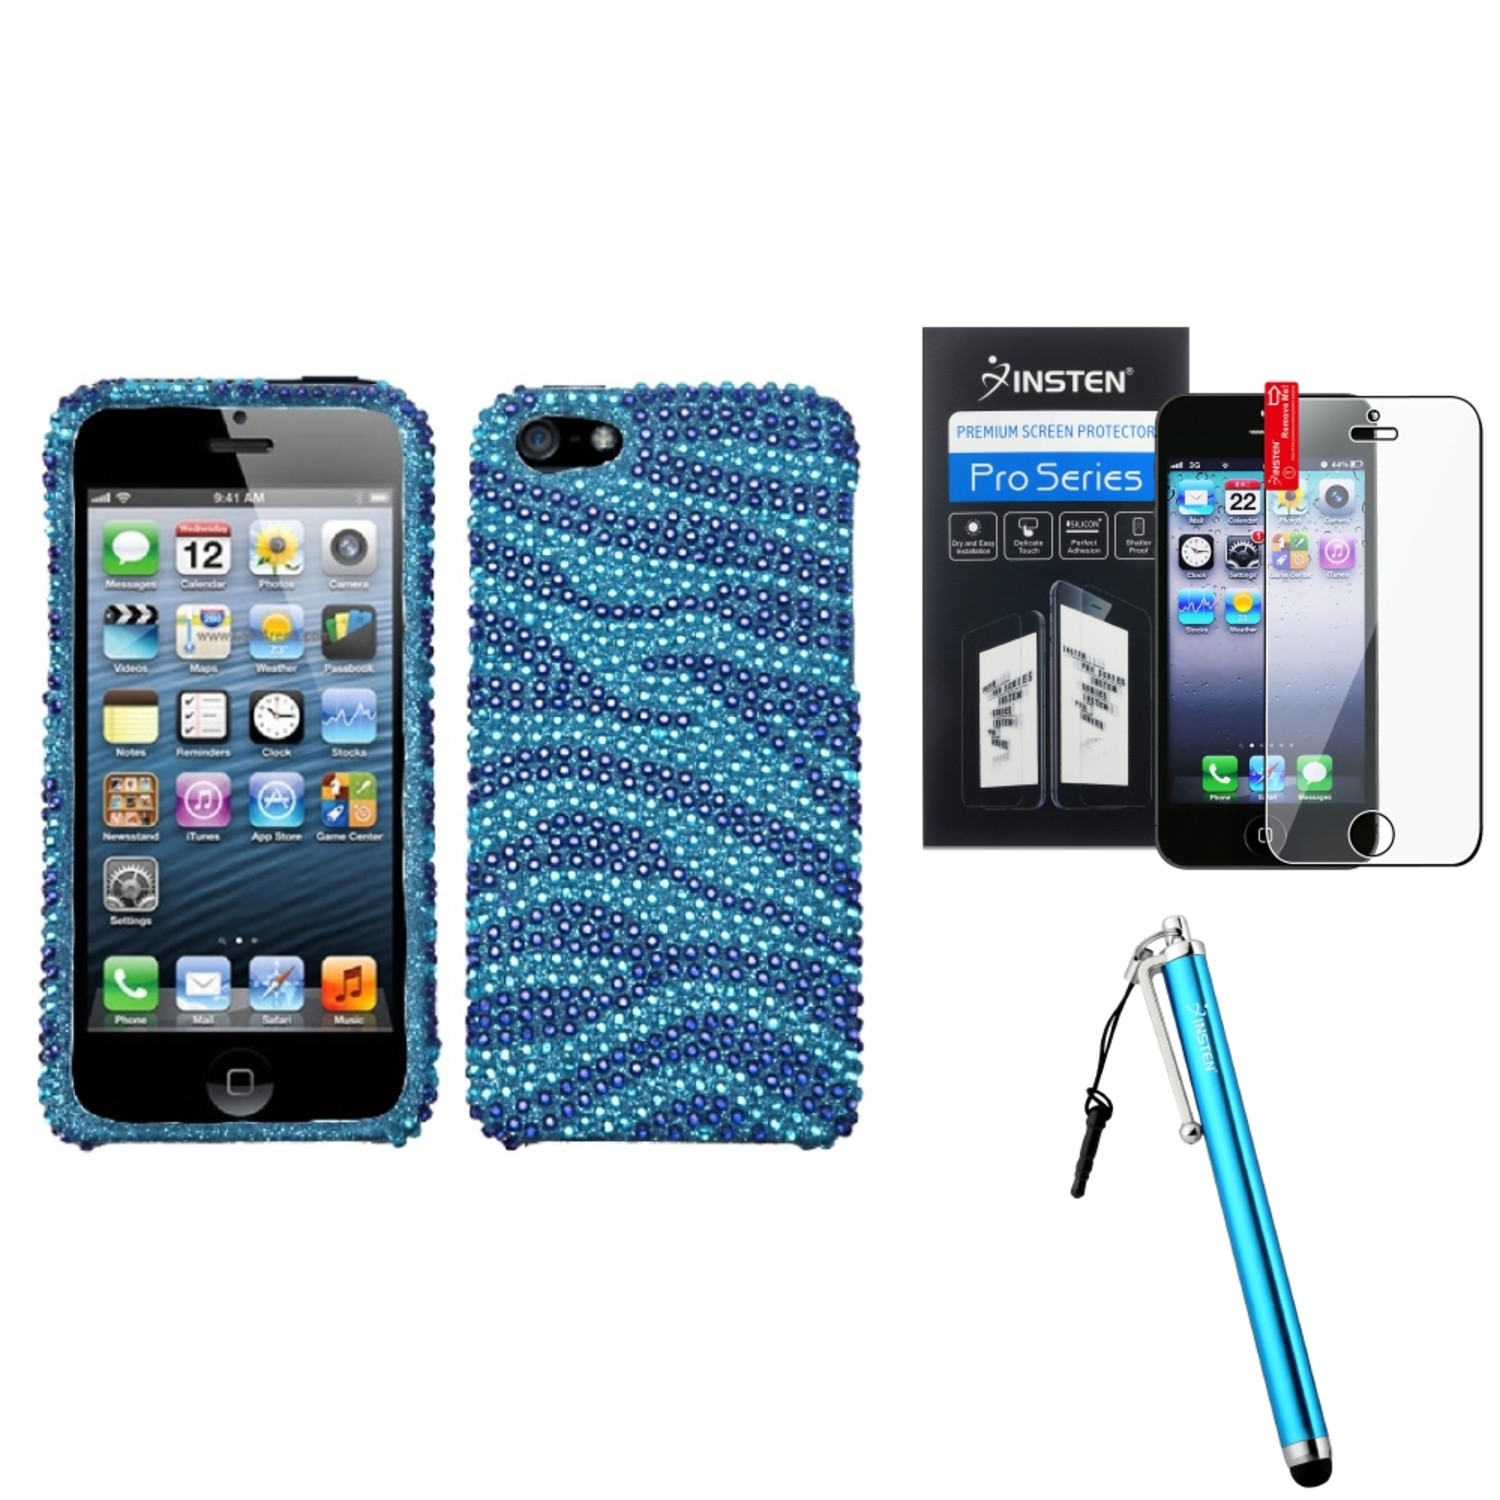 Insten Zebra Skin (Baby Blue/Dark Blue) Diamante Case For iPhone 5 / 5s   Film   Stylus Pen